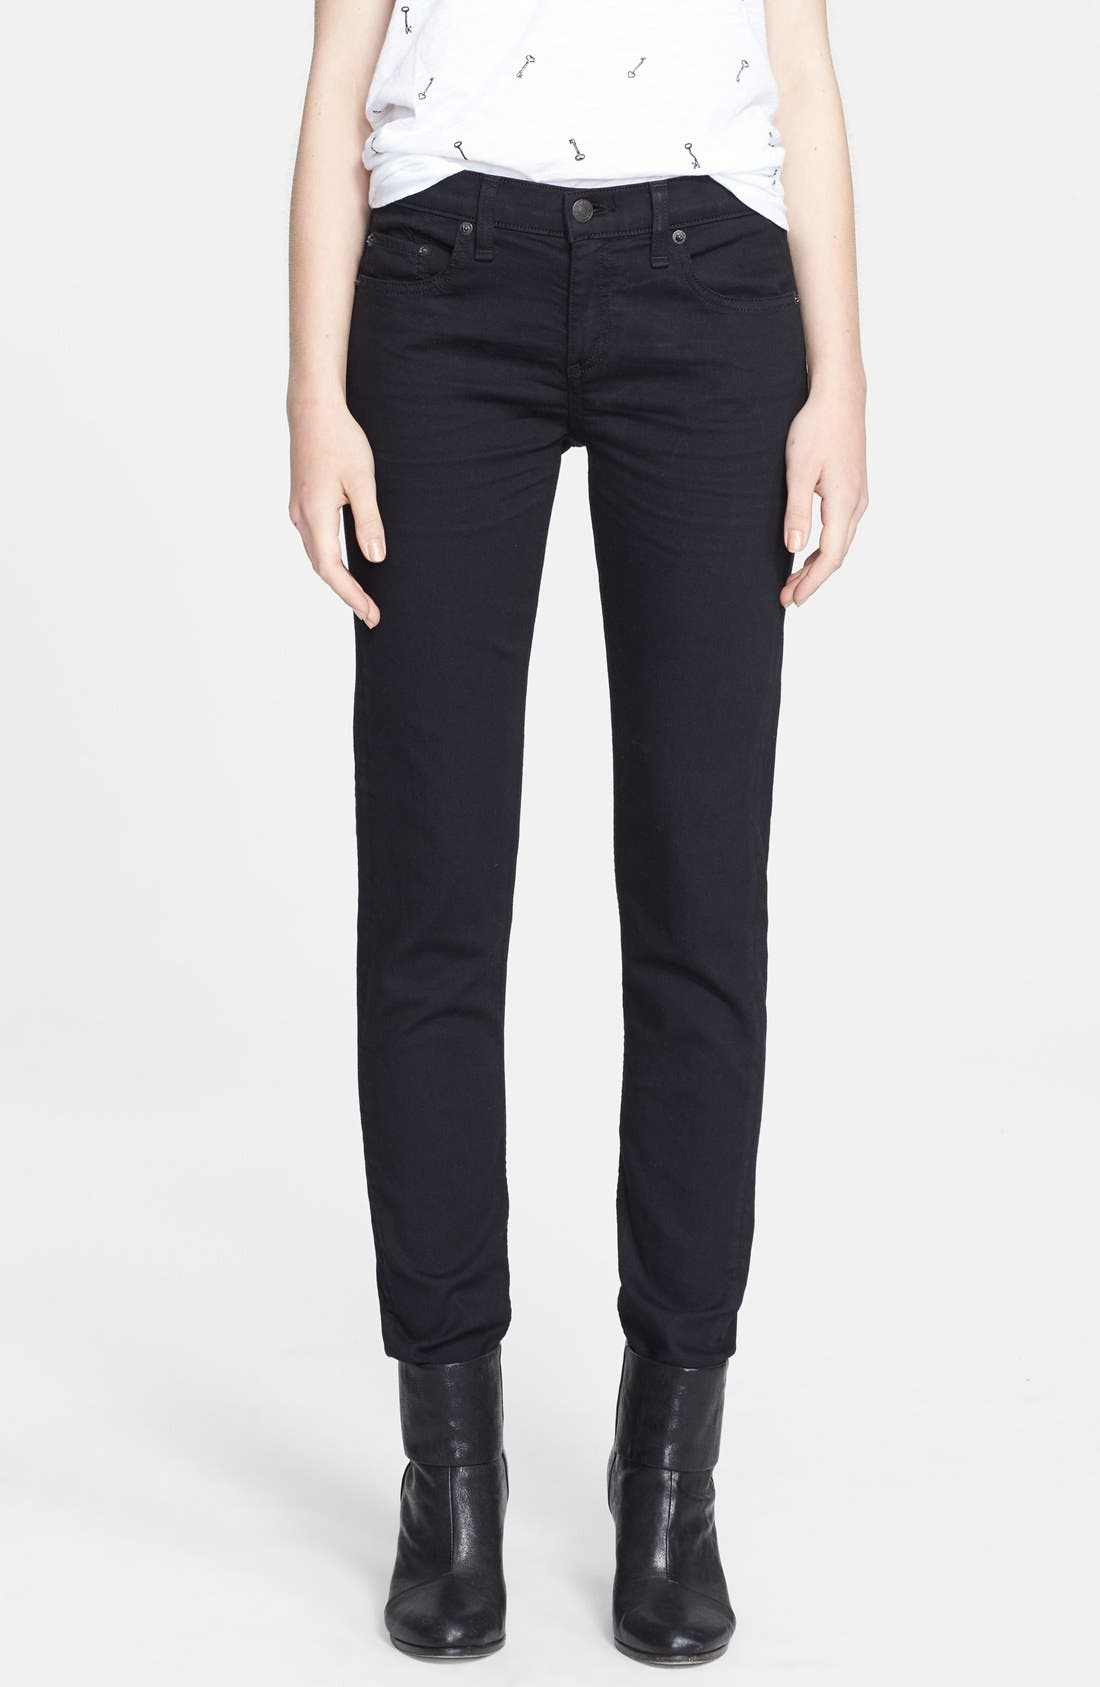 'The Dre' Skinny Jeans,                             Main thumbnail 1, color,                             Aged Black